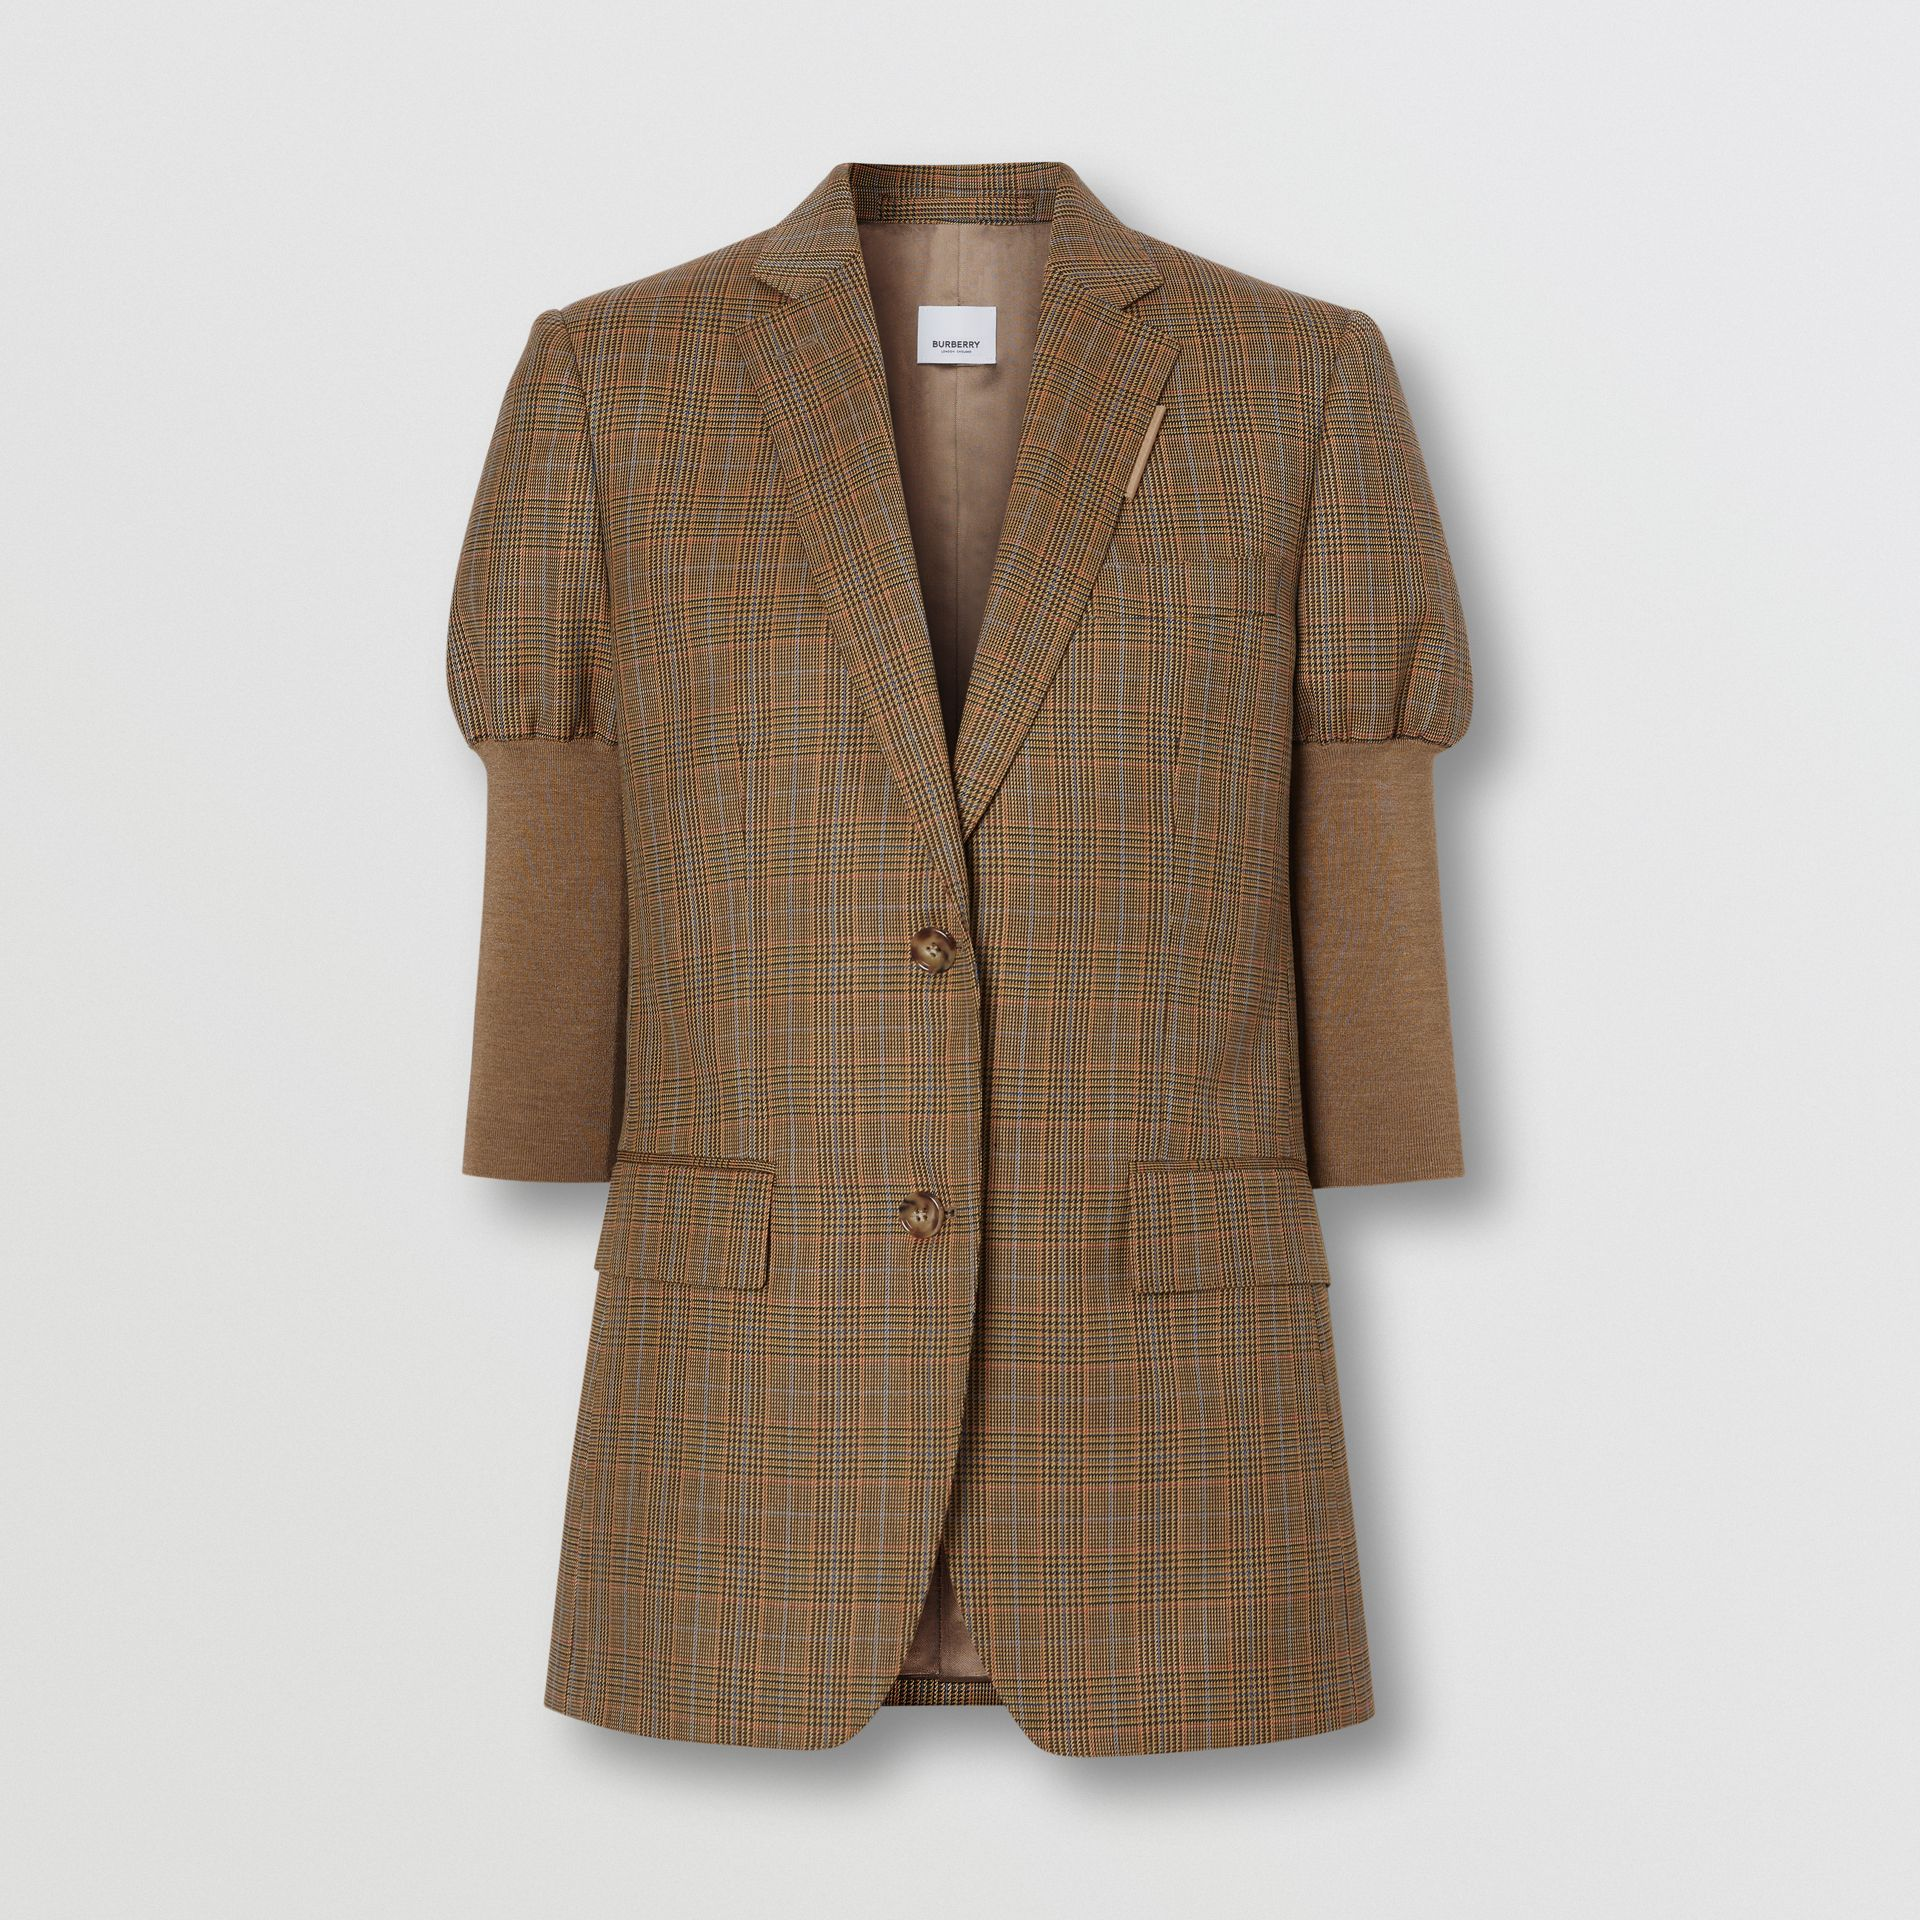 Knitted Sleeve Houndstooth Check Wool Tailored Jacket in Fawn - Women | Burberry Singapore - gallery image 3